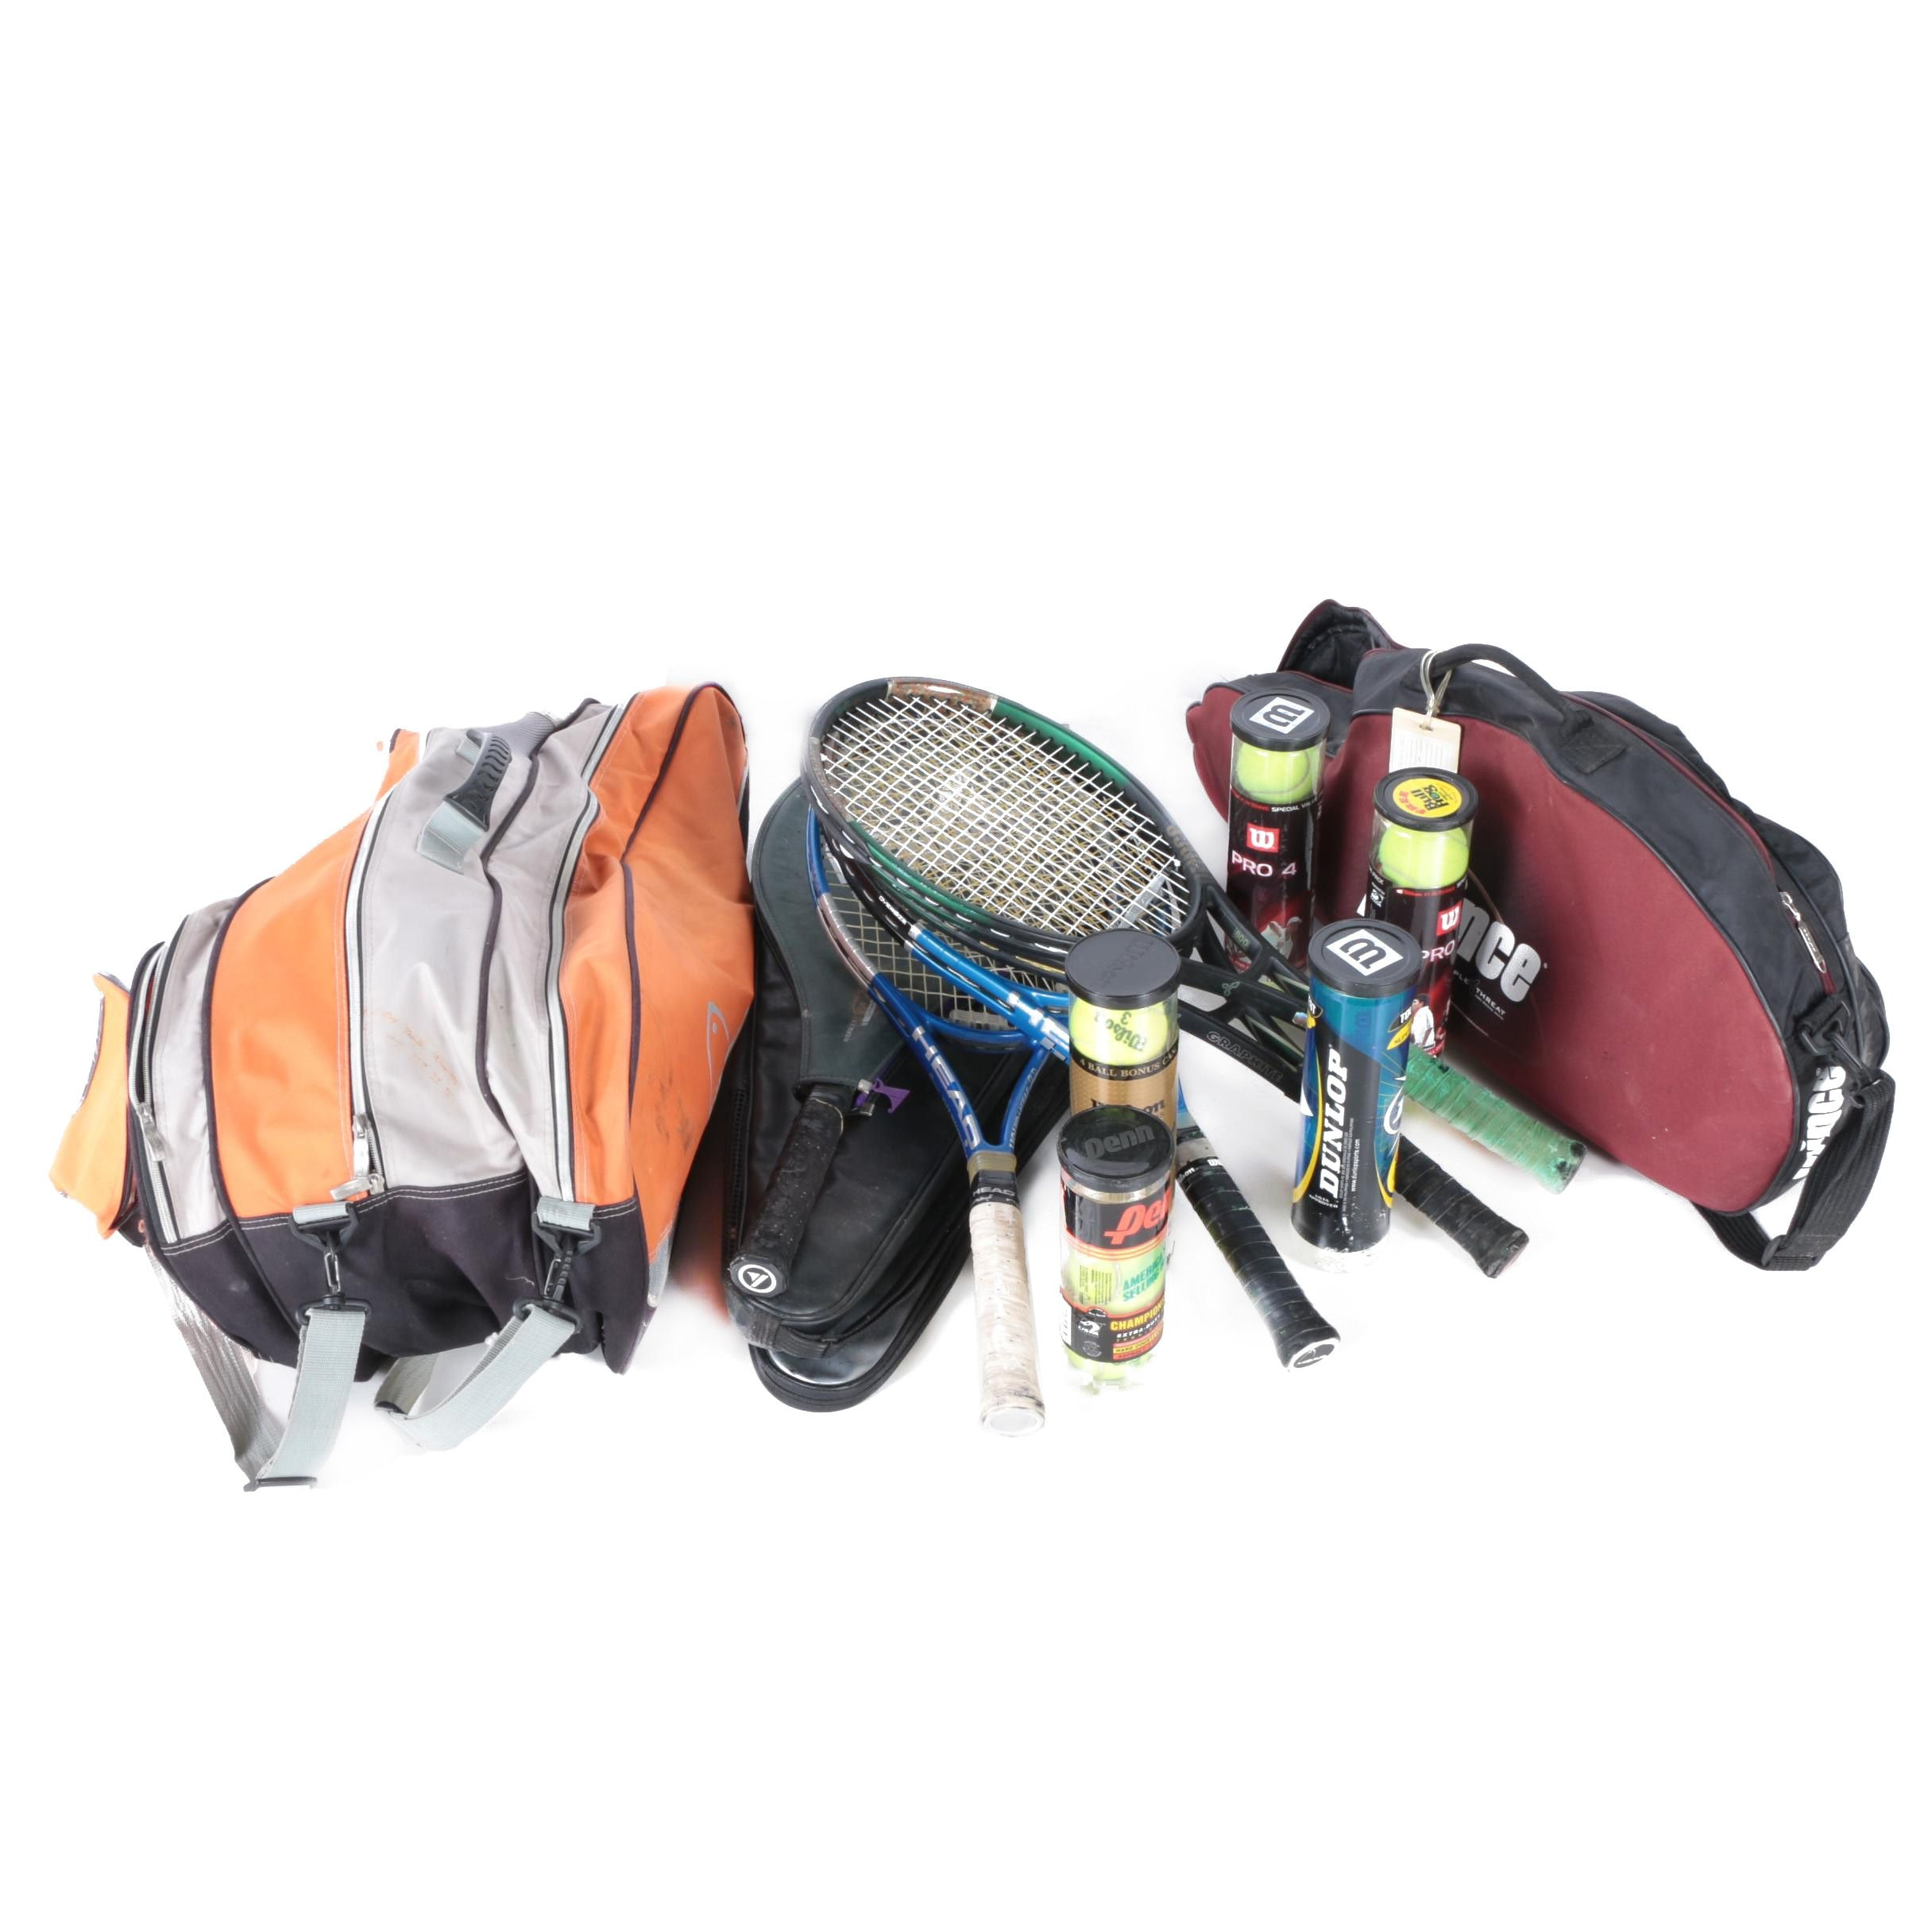 Tennis Racket Bag with Rackets